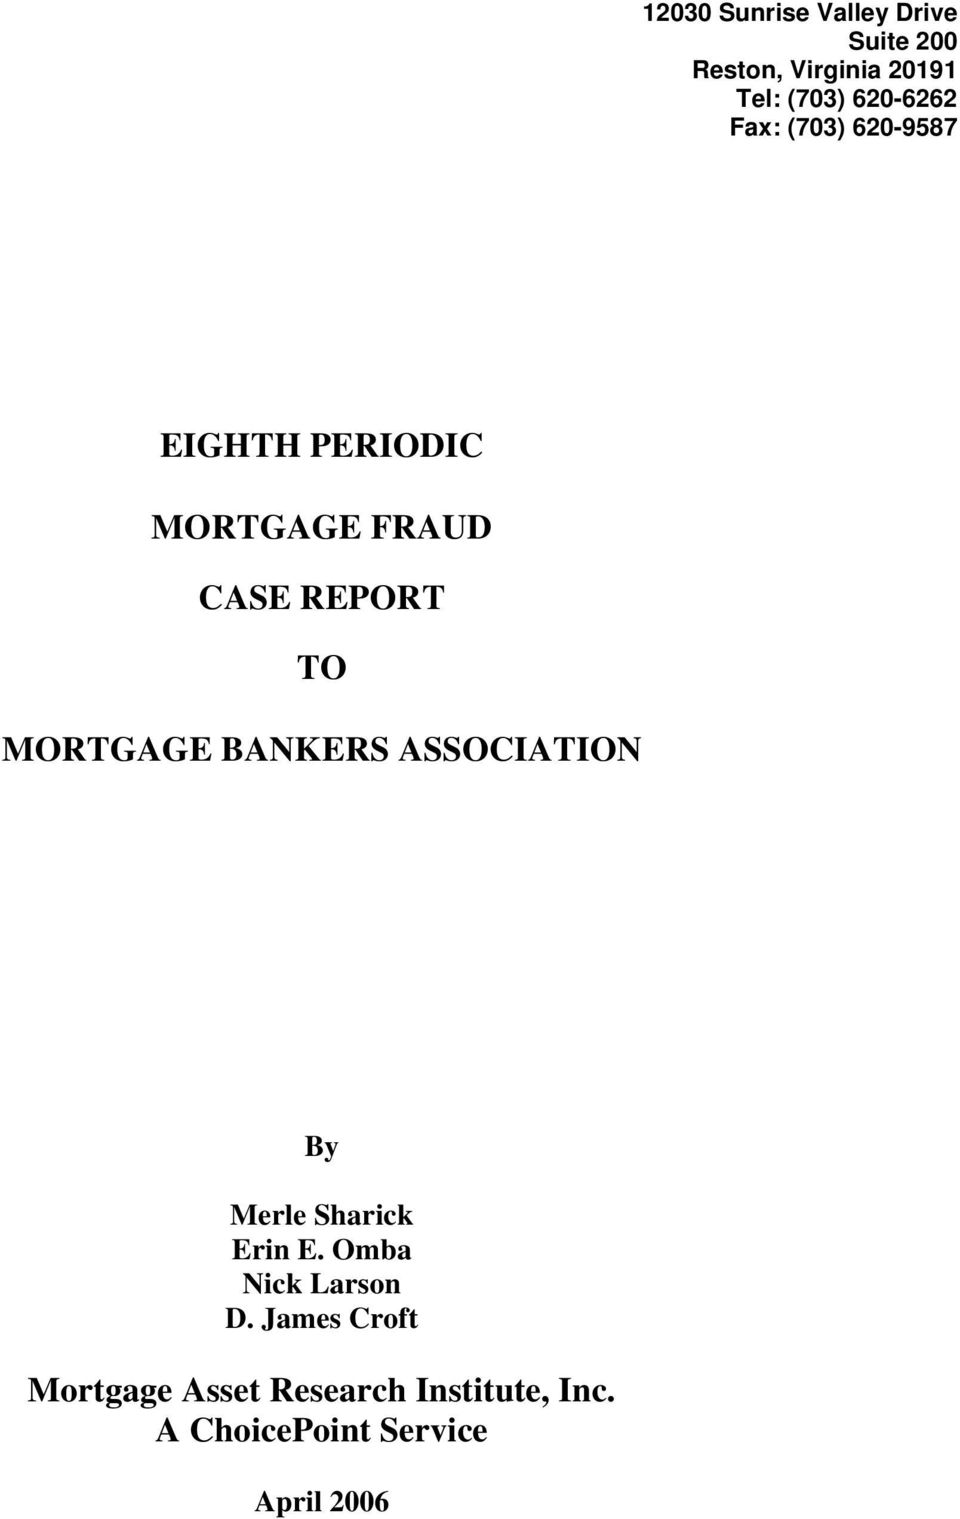 Mortgage Asset Research Institute - PDF